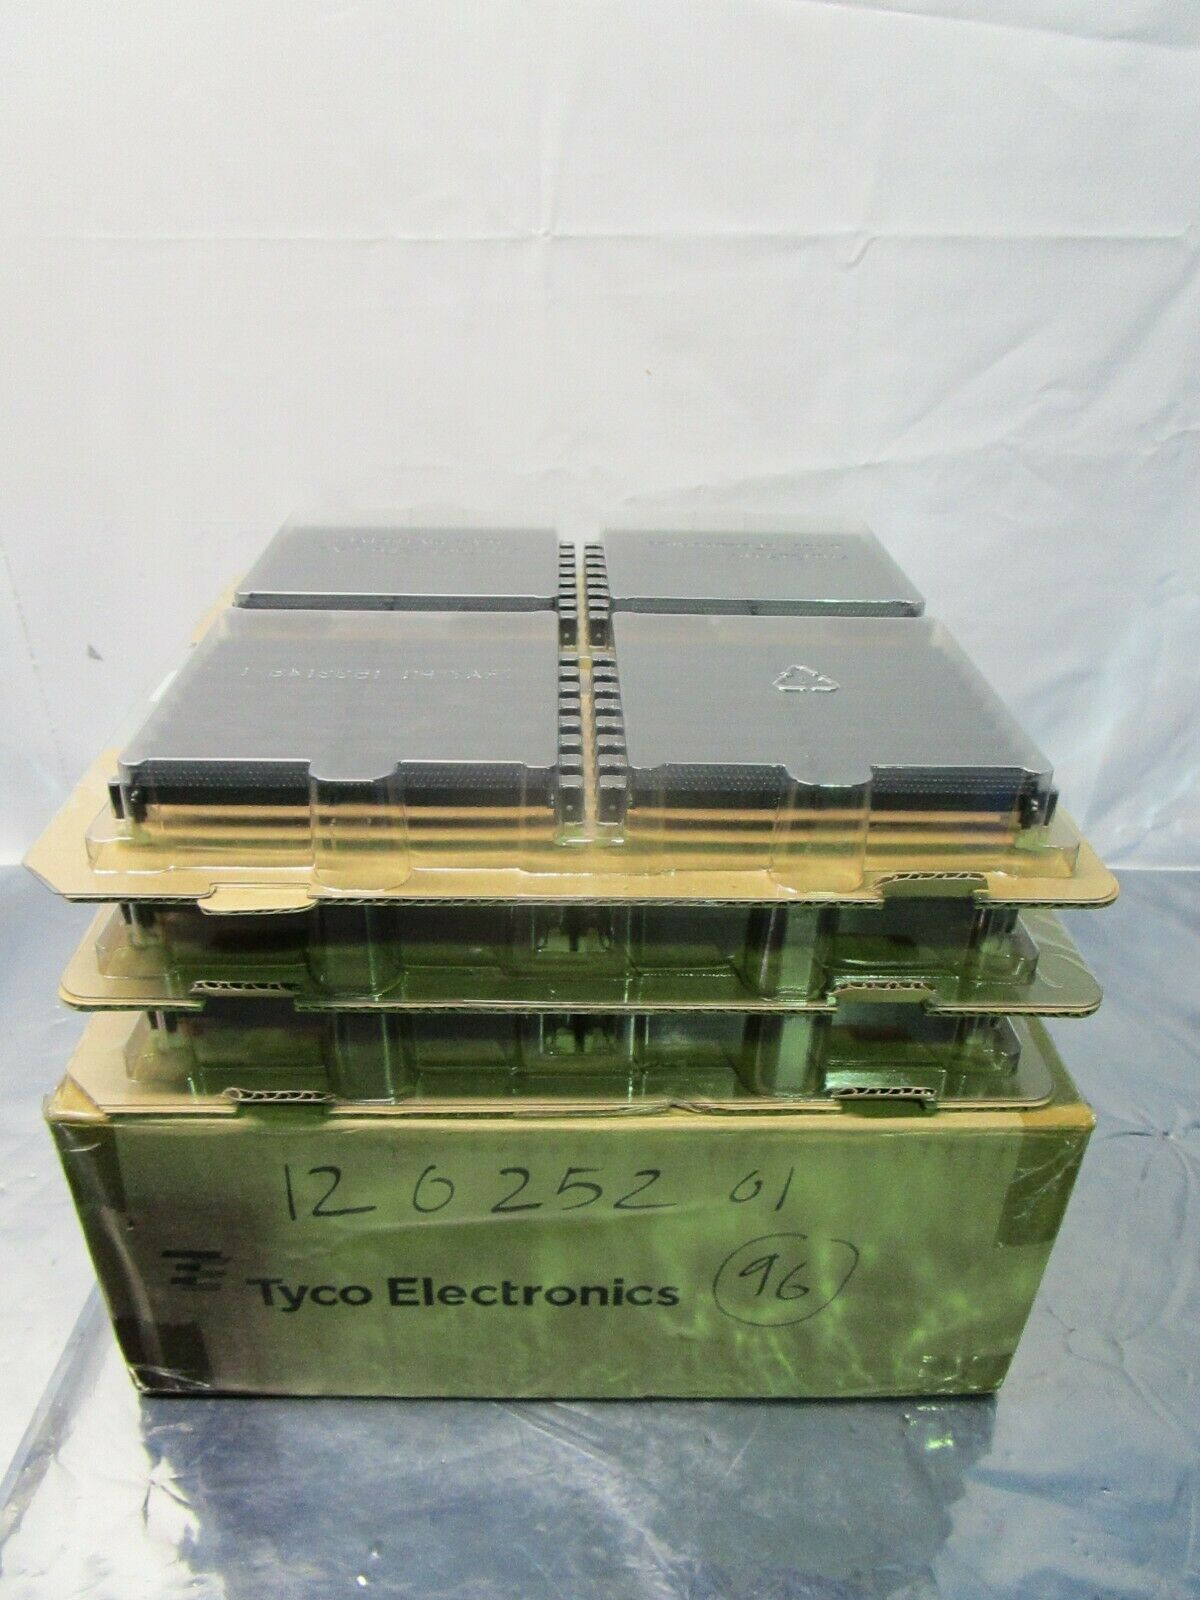 1 Lot of 96 Tyco Electronics 1658912-3 DDR DIMM ELECTRIVCAL CONNECTOR, 102434